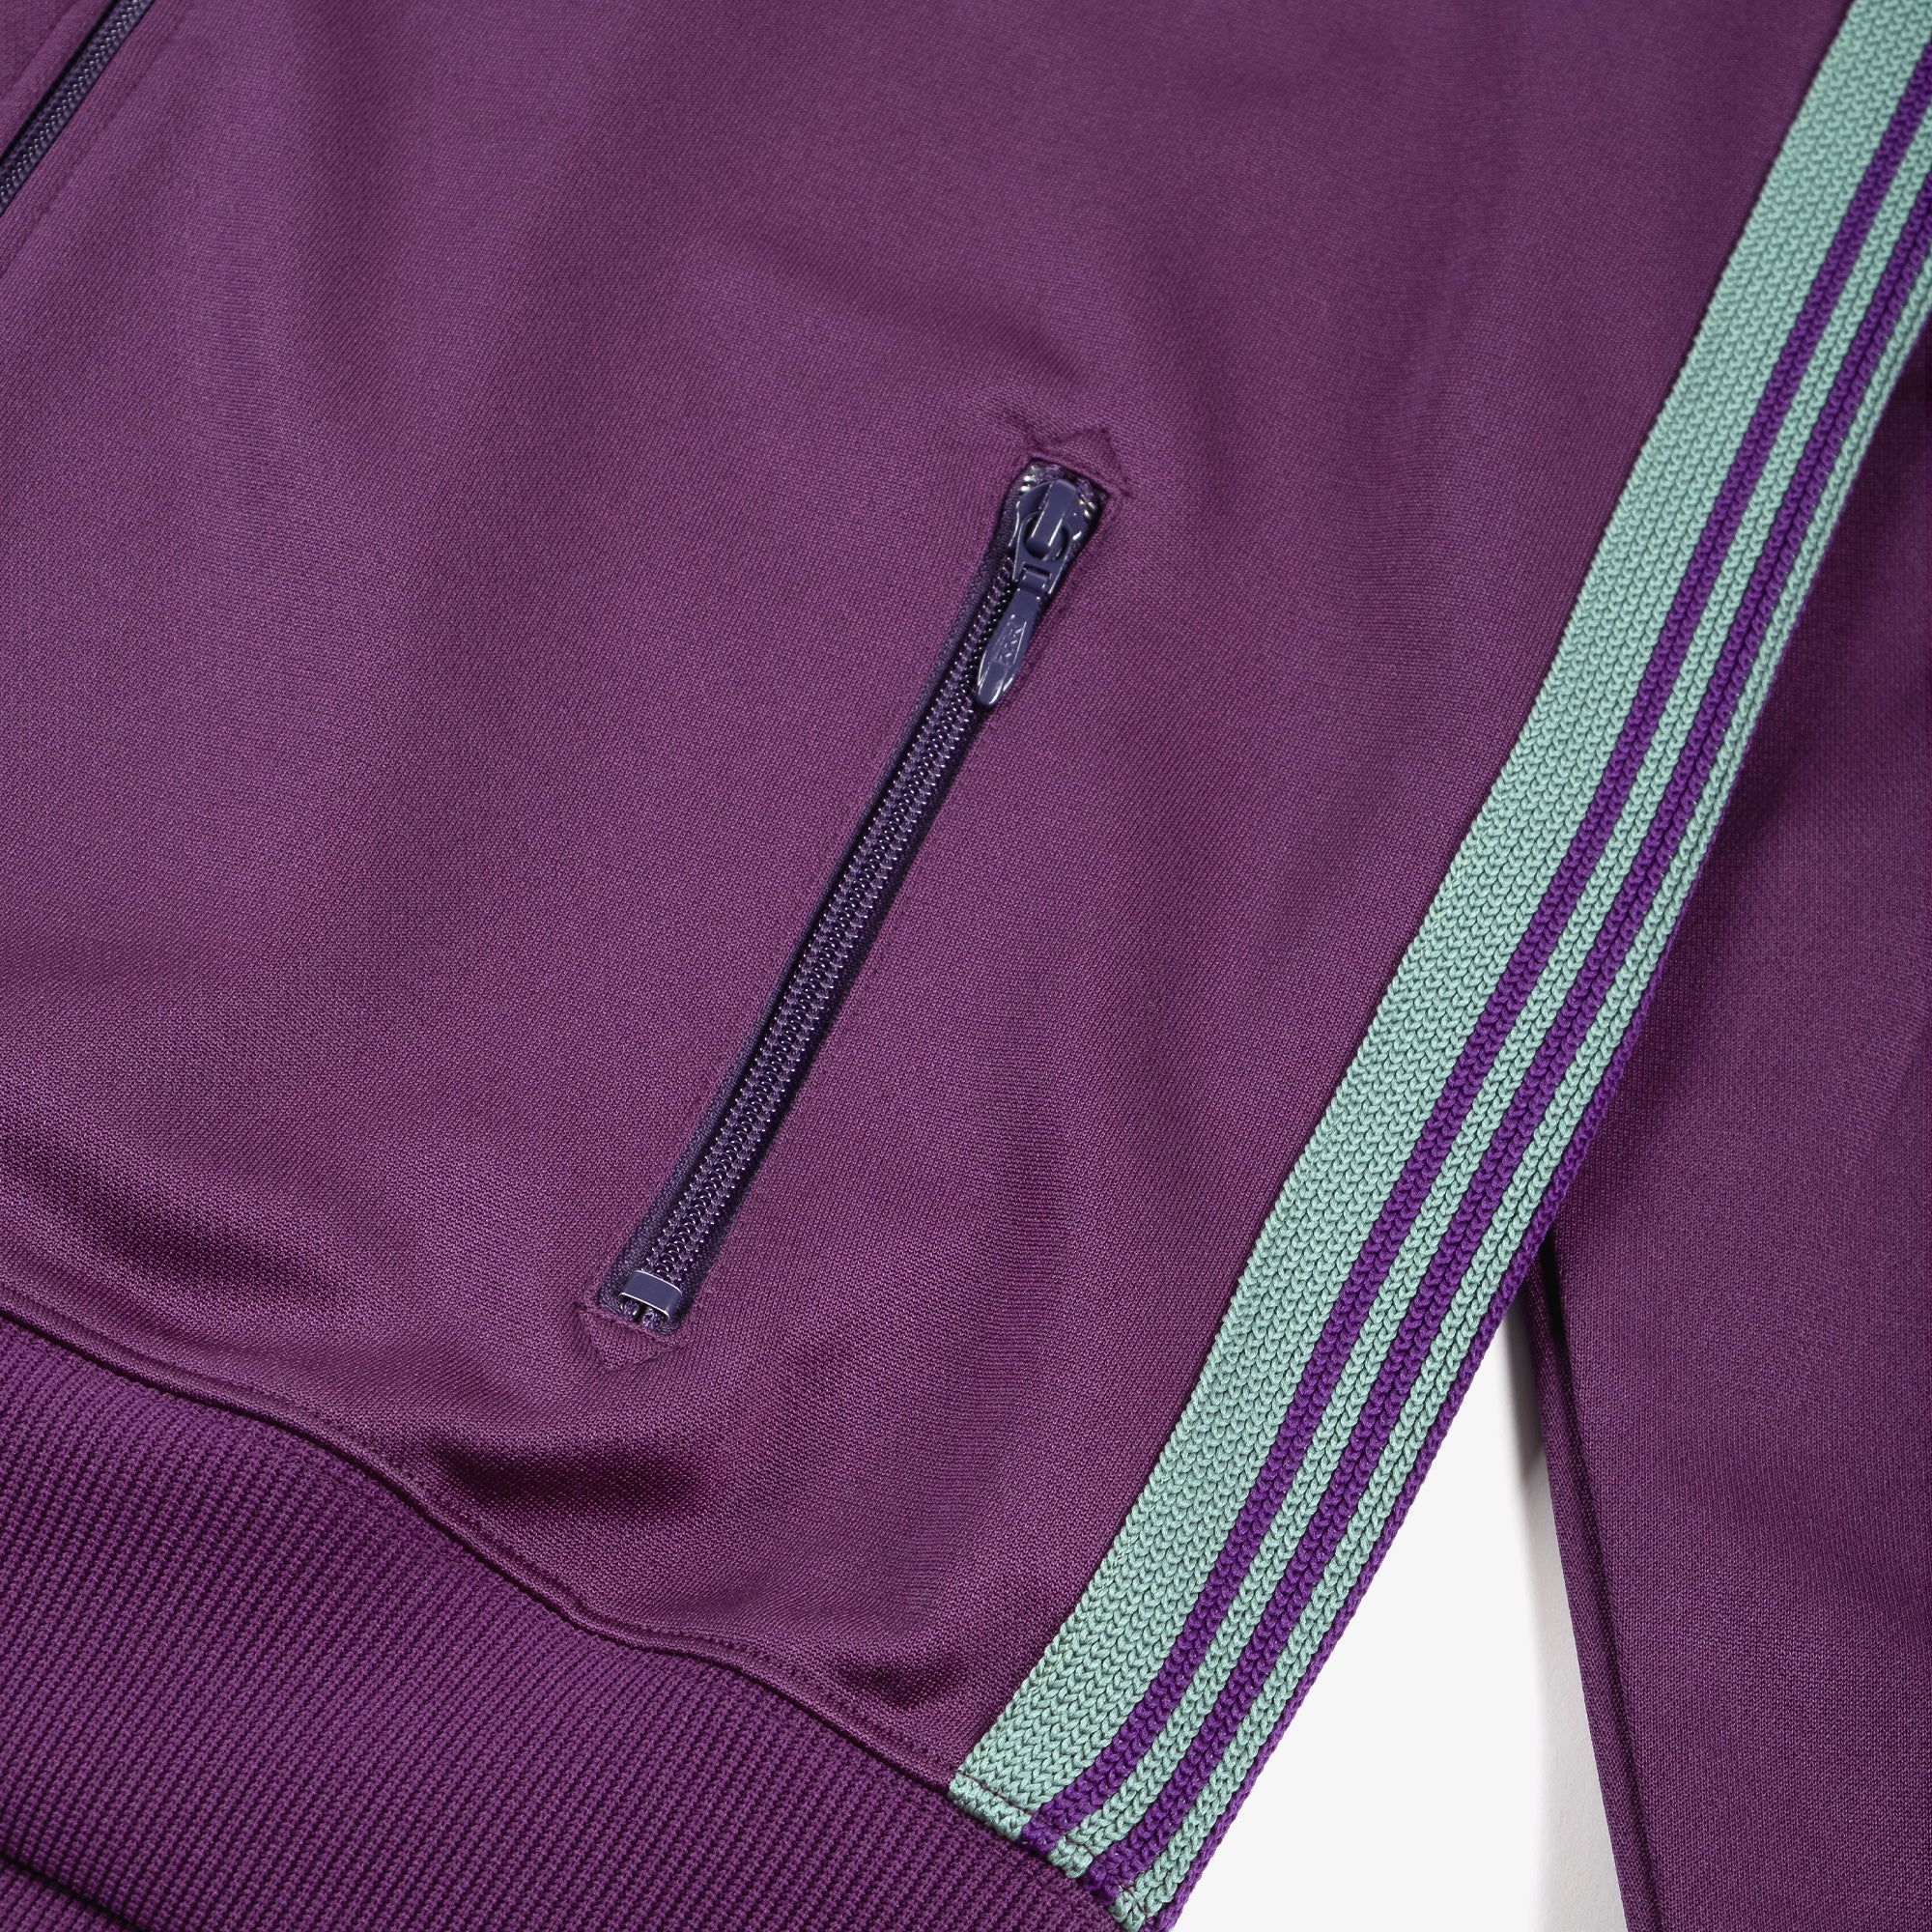 Needles M' Track Jacket - Poly Smooth Eggplant 5